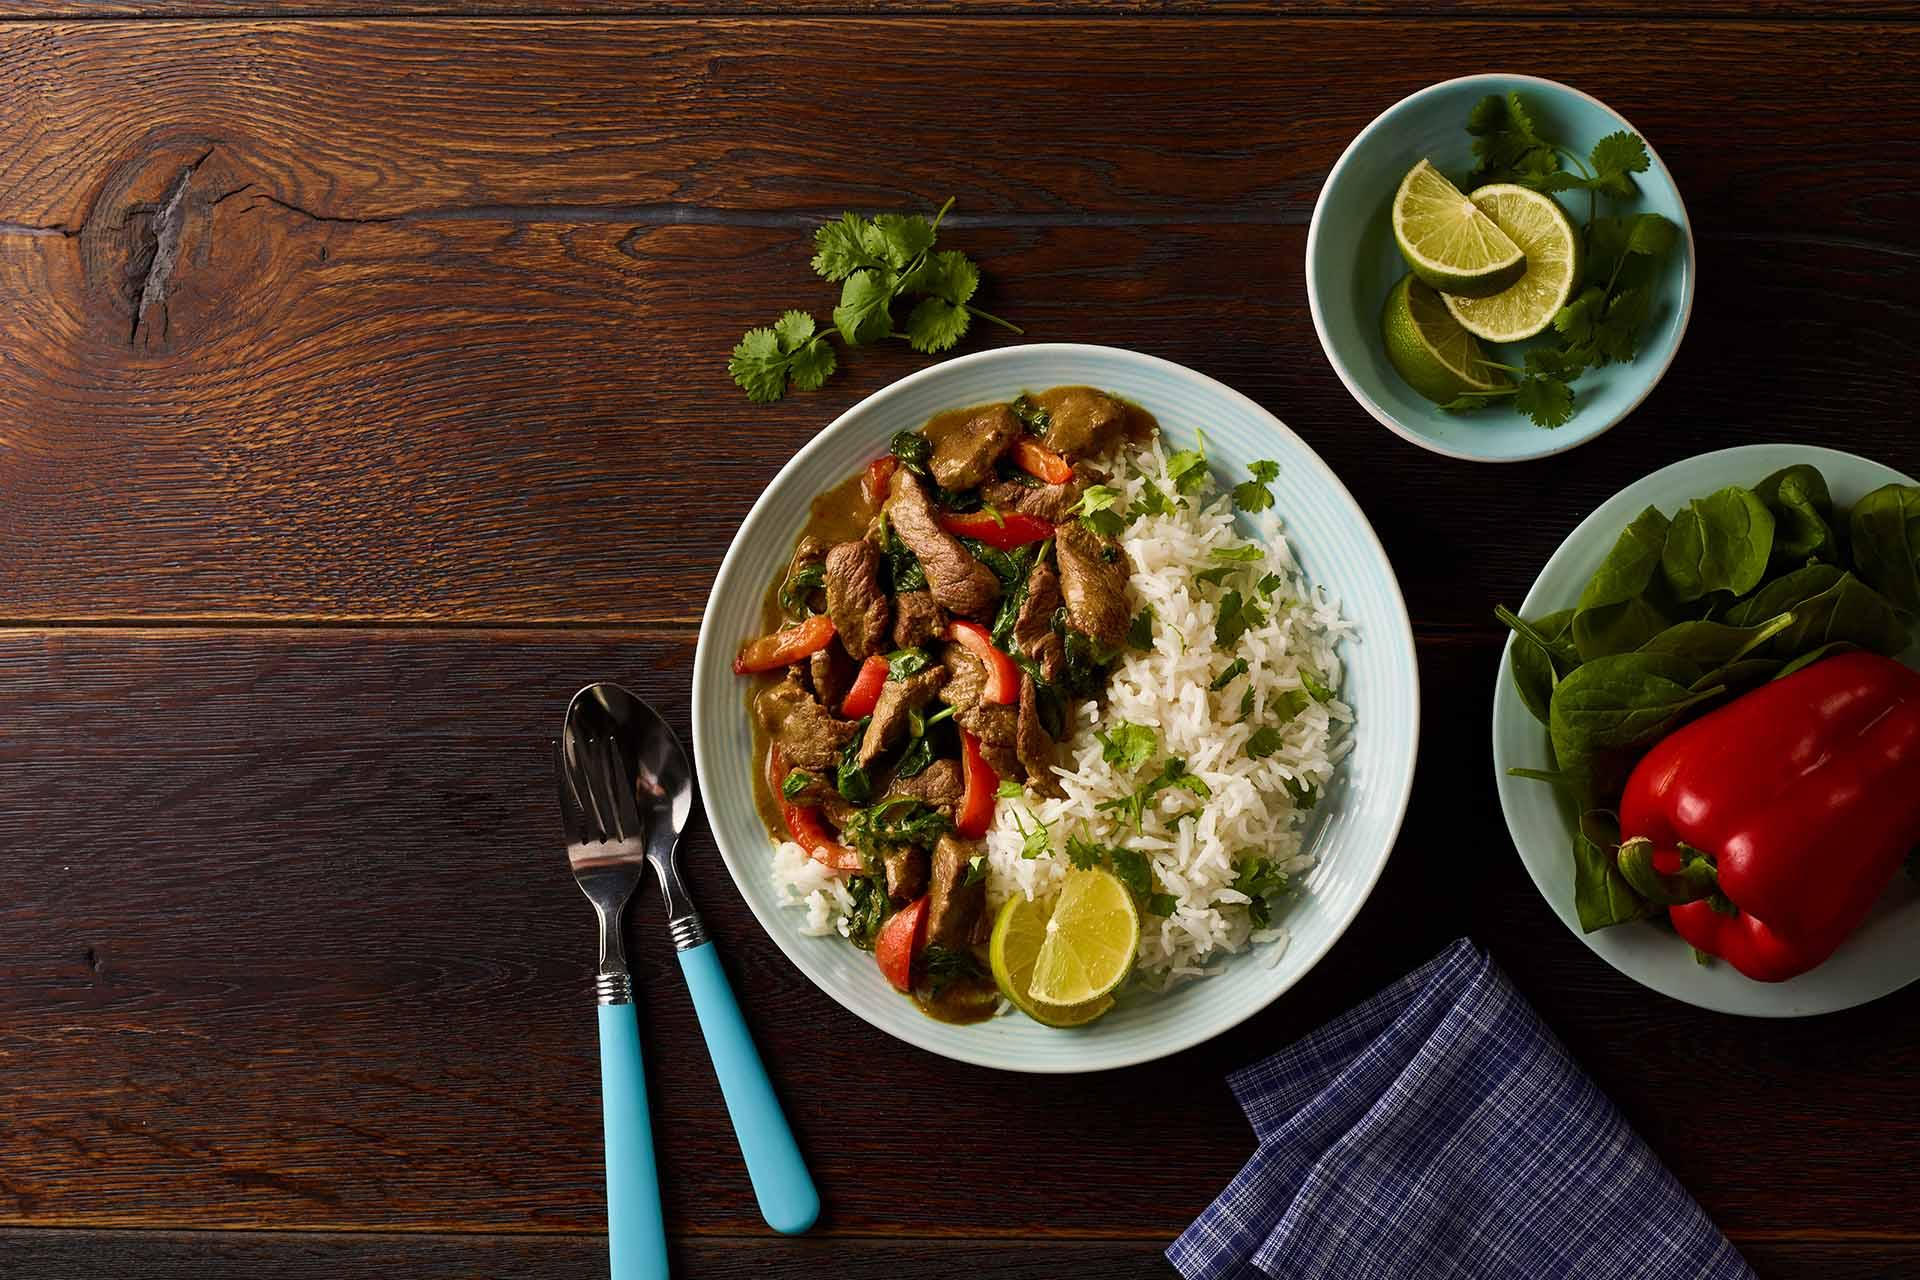 Malaysian Beef Stir Fry with Coconut Rice